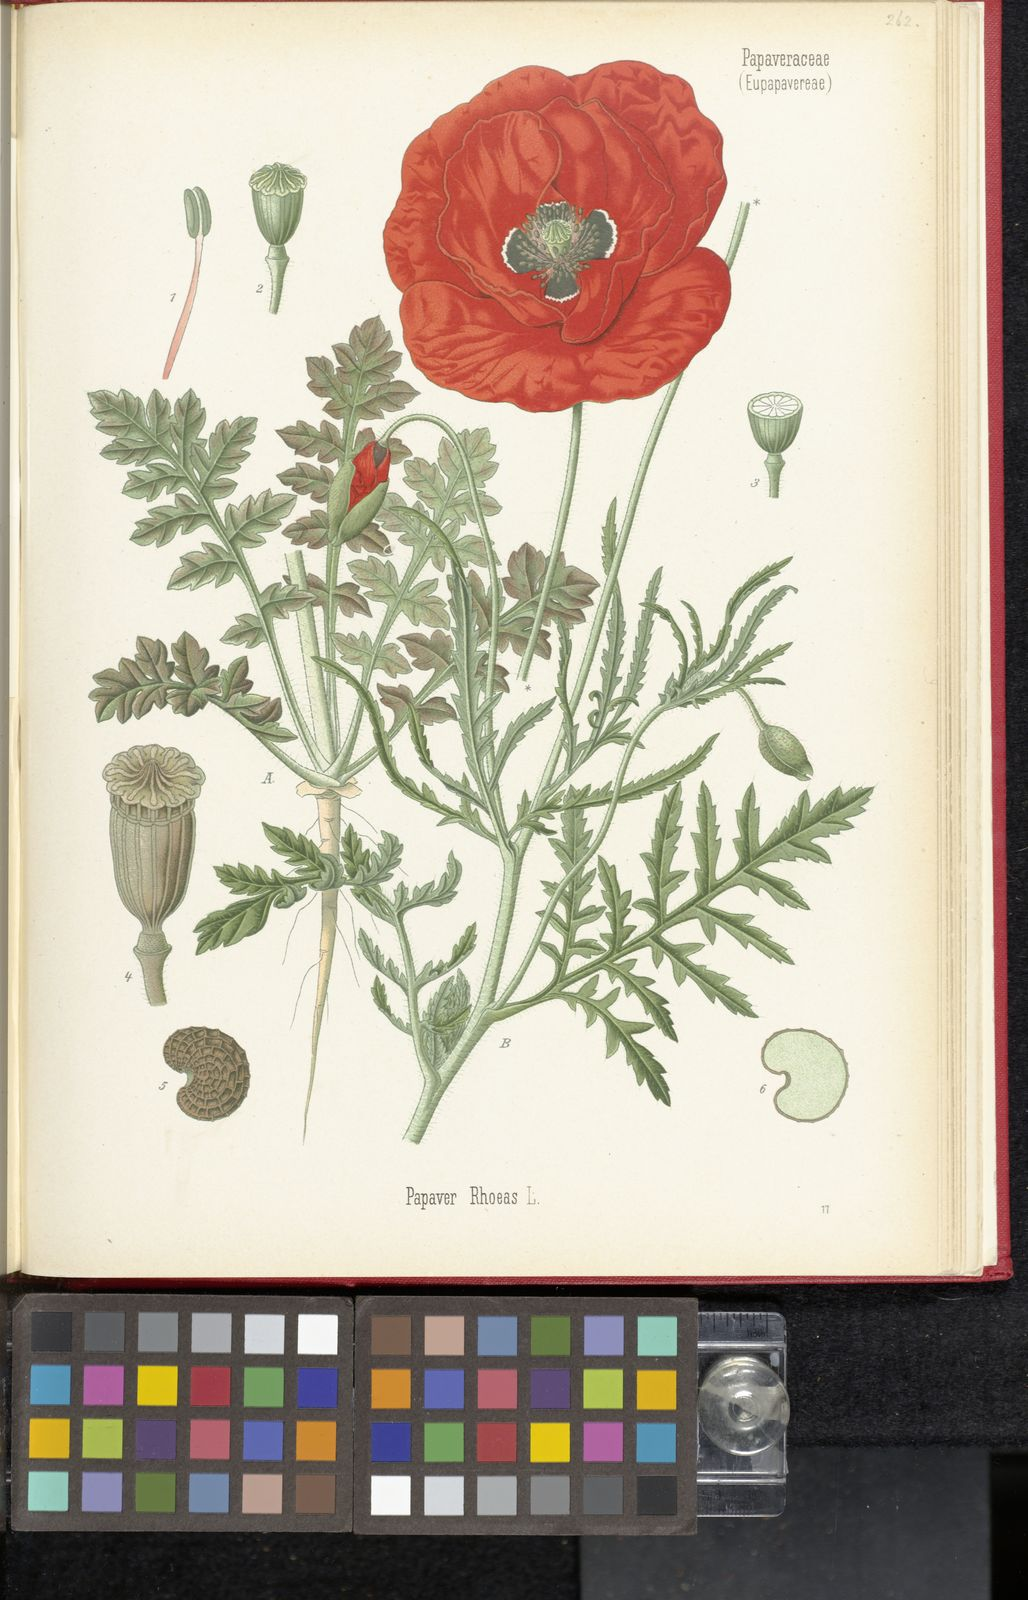 Papaver Rhoeas L Plants Of The World Online Kew Science